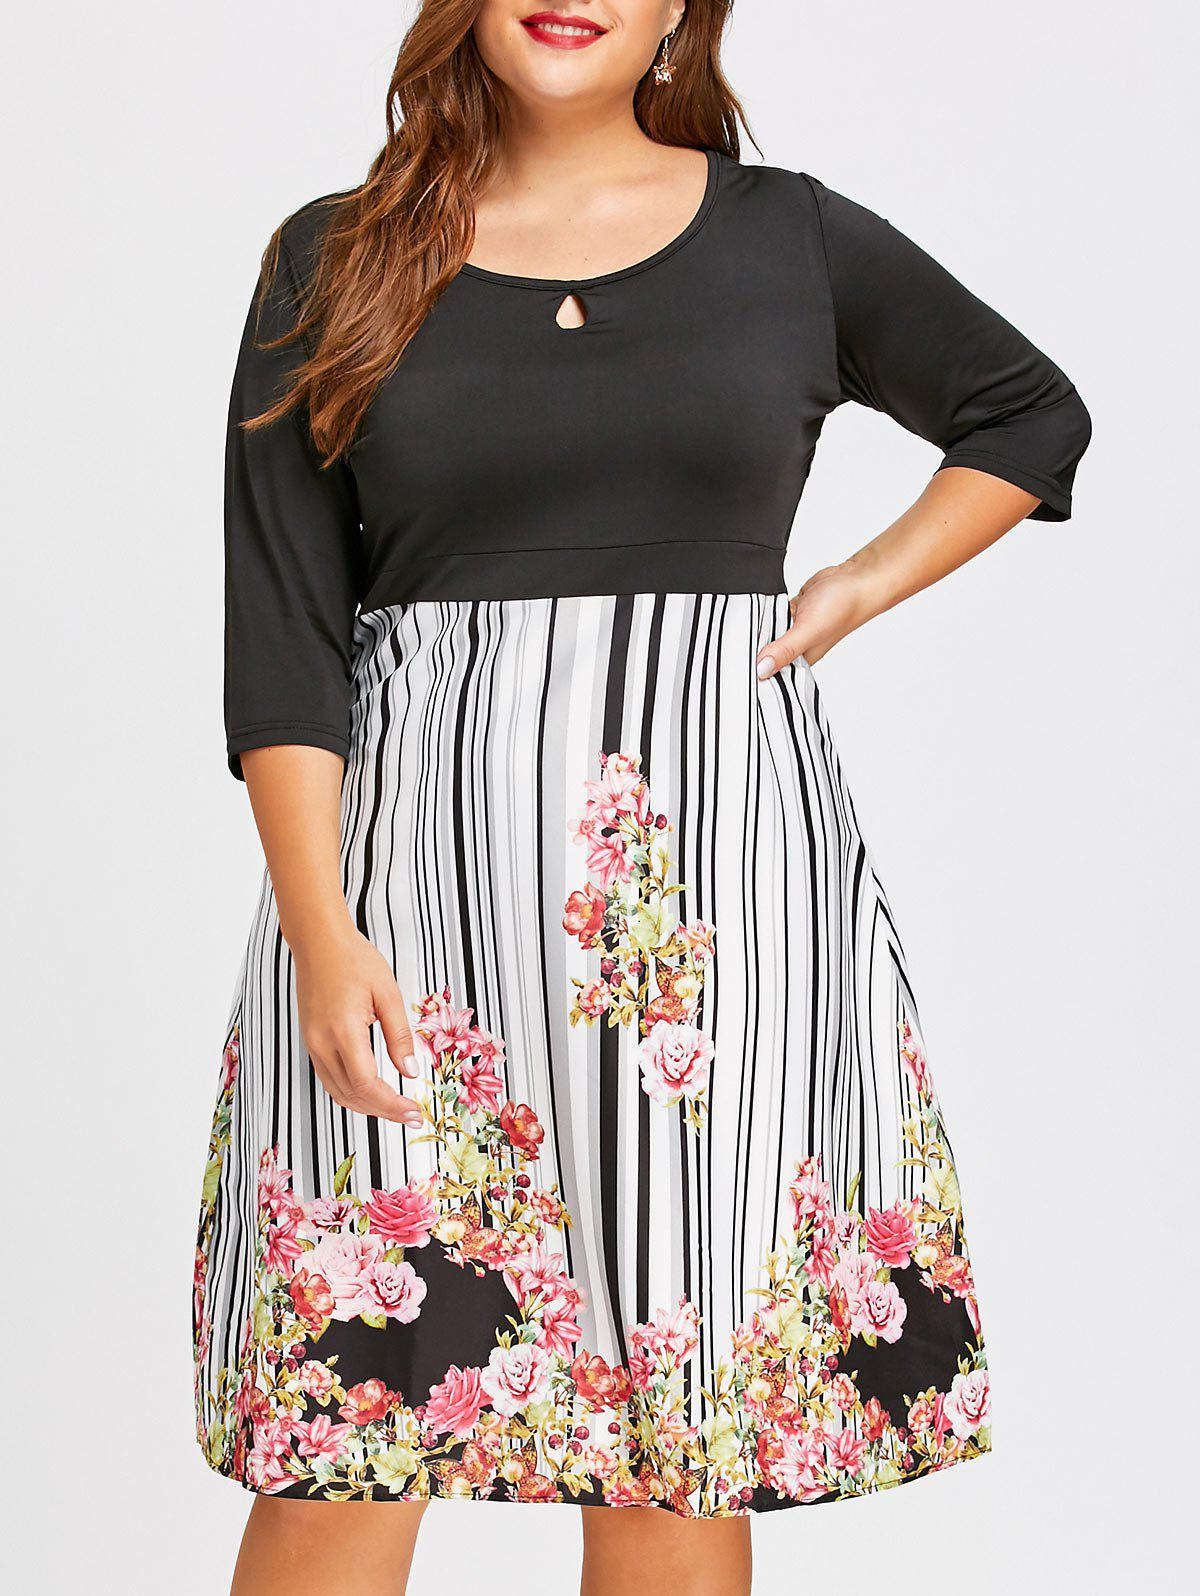 Plus Size Empire Waist Midi Floral  DressWOMEN<br><br>Size: 2XL; Color: BLACK; Style: Casual; Material: Polyester; Silhouette: A-Line; Dresses Length: Knee-Length; Neckline: Scoop Neck; Sleeve Length: 3/4 Length Sleeves; Waist: Empire; Pattern Type: Floral,Print,Striped; With Belt: No; Season: Fall,Winter; Weight: 0.3100kg; Package Contents: 1 x Dress;